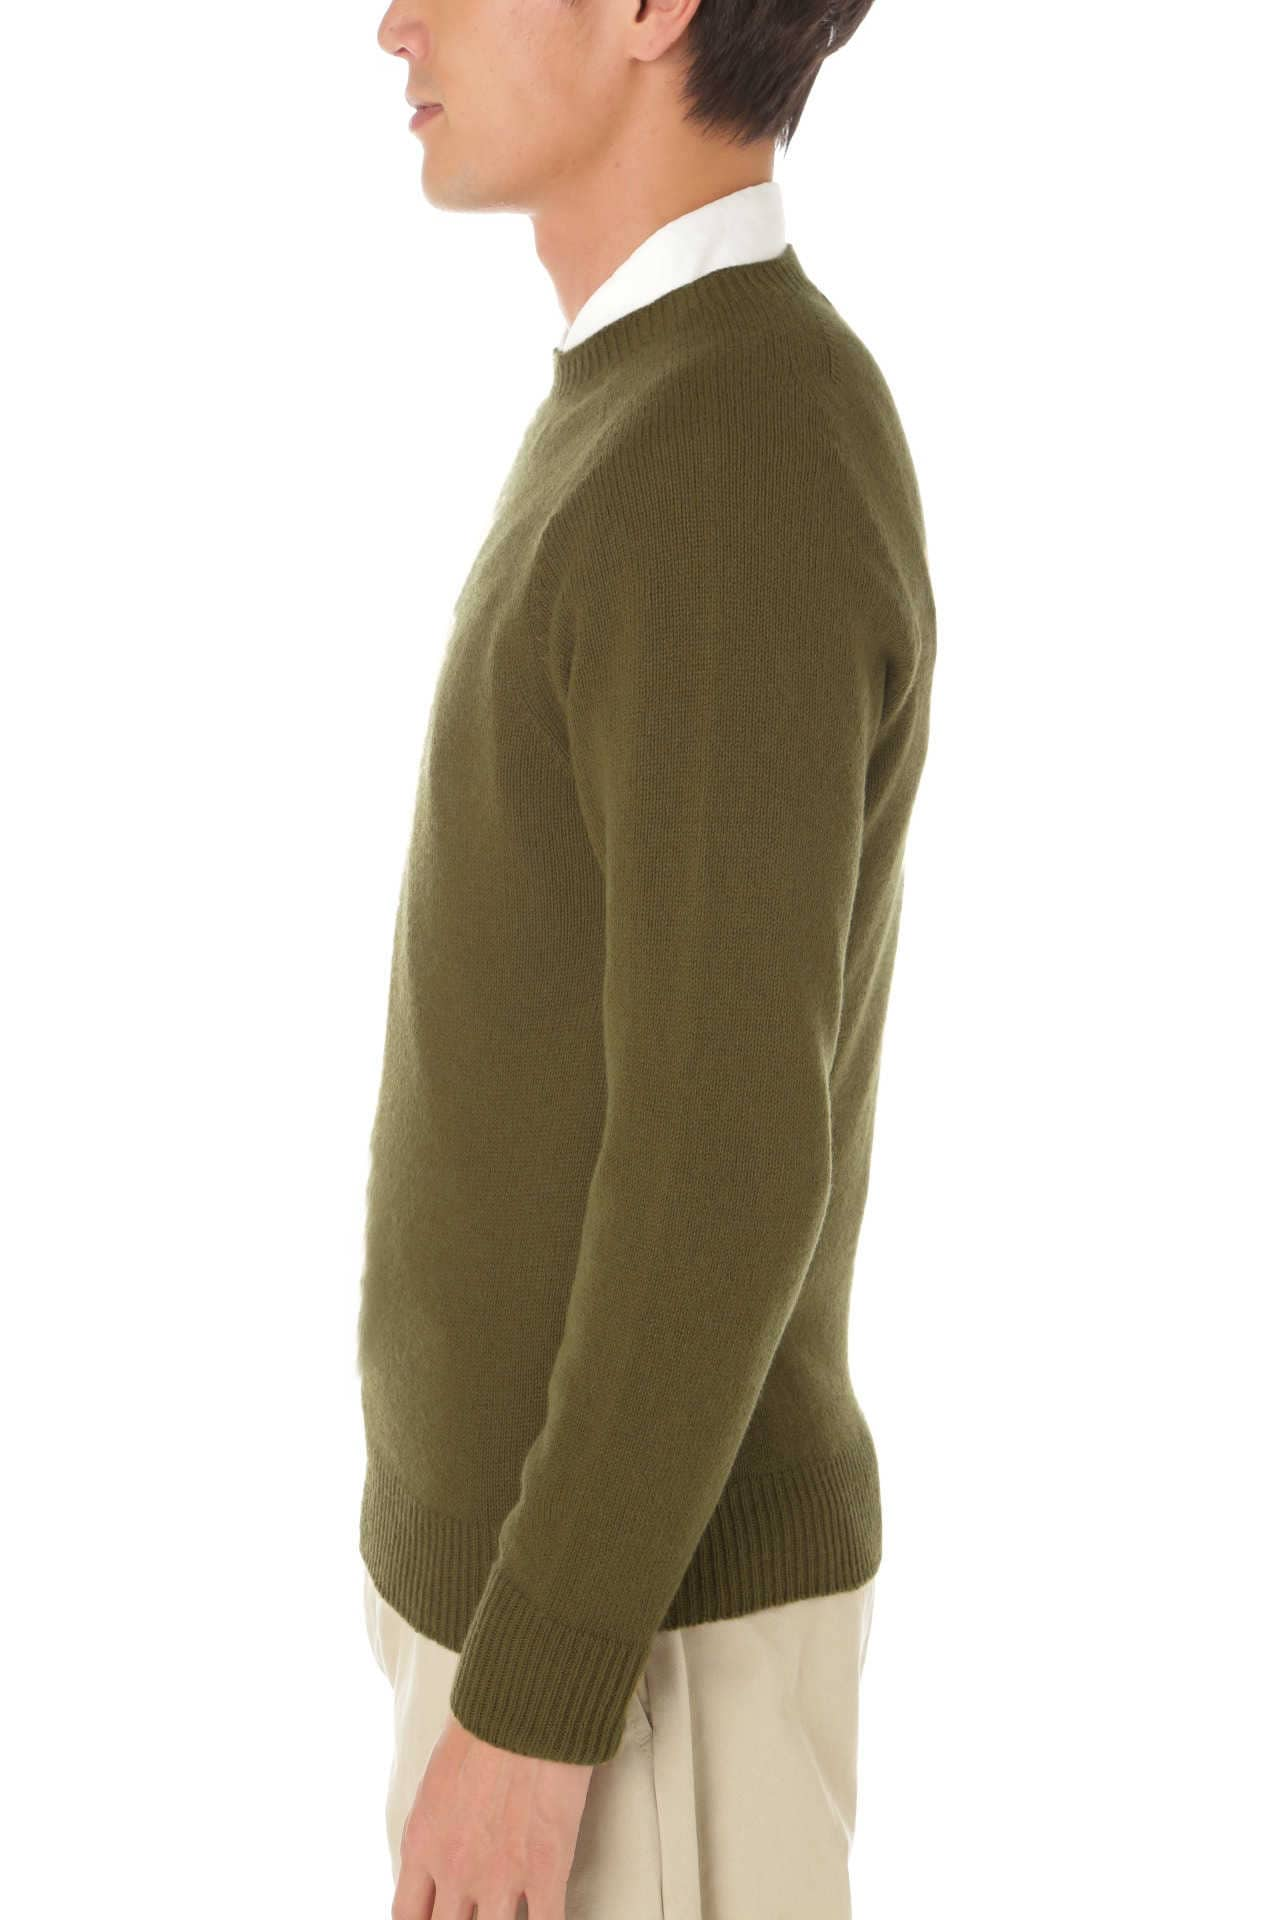 COTTON CASHMERE TWIST8